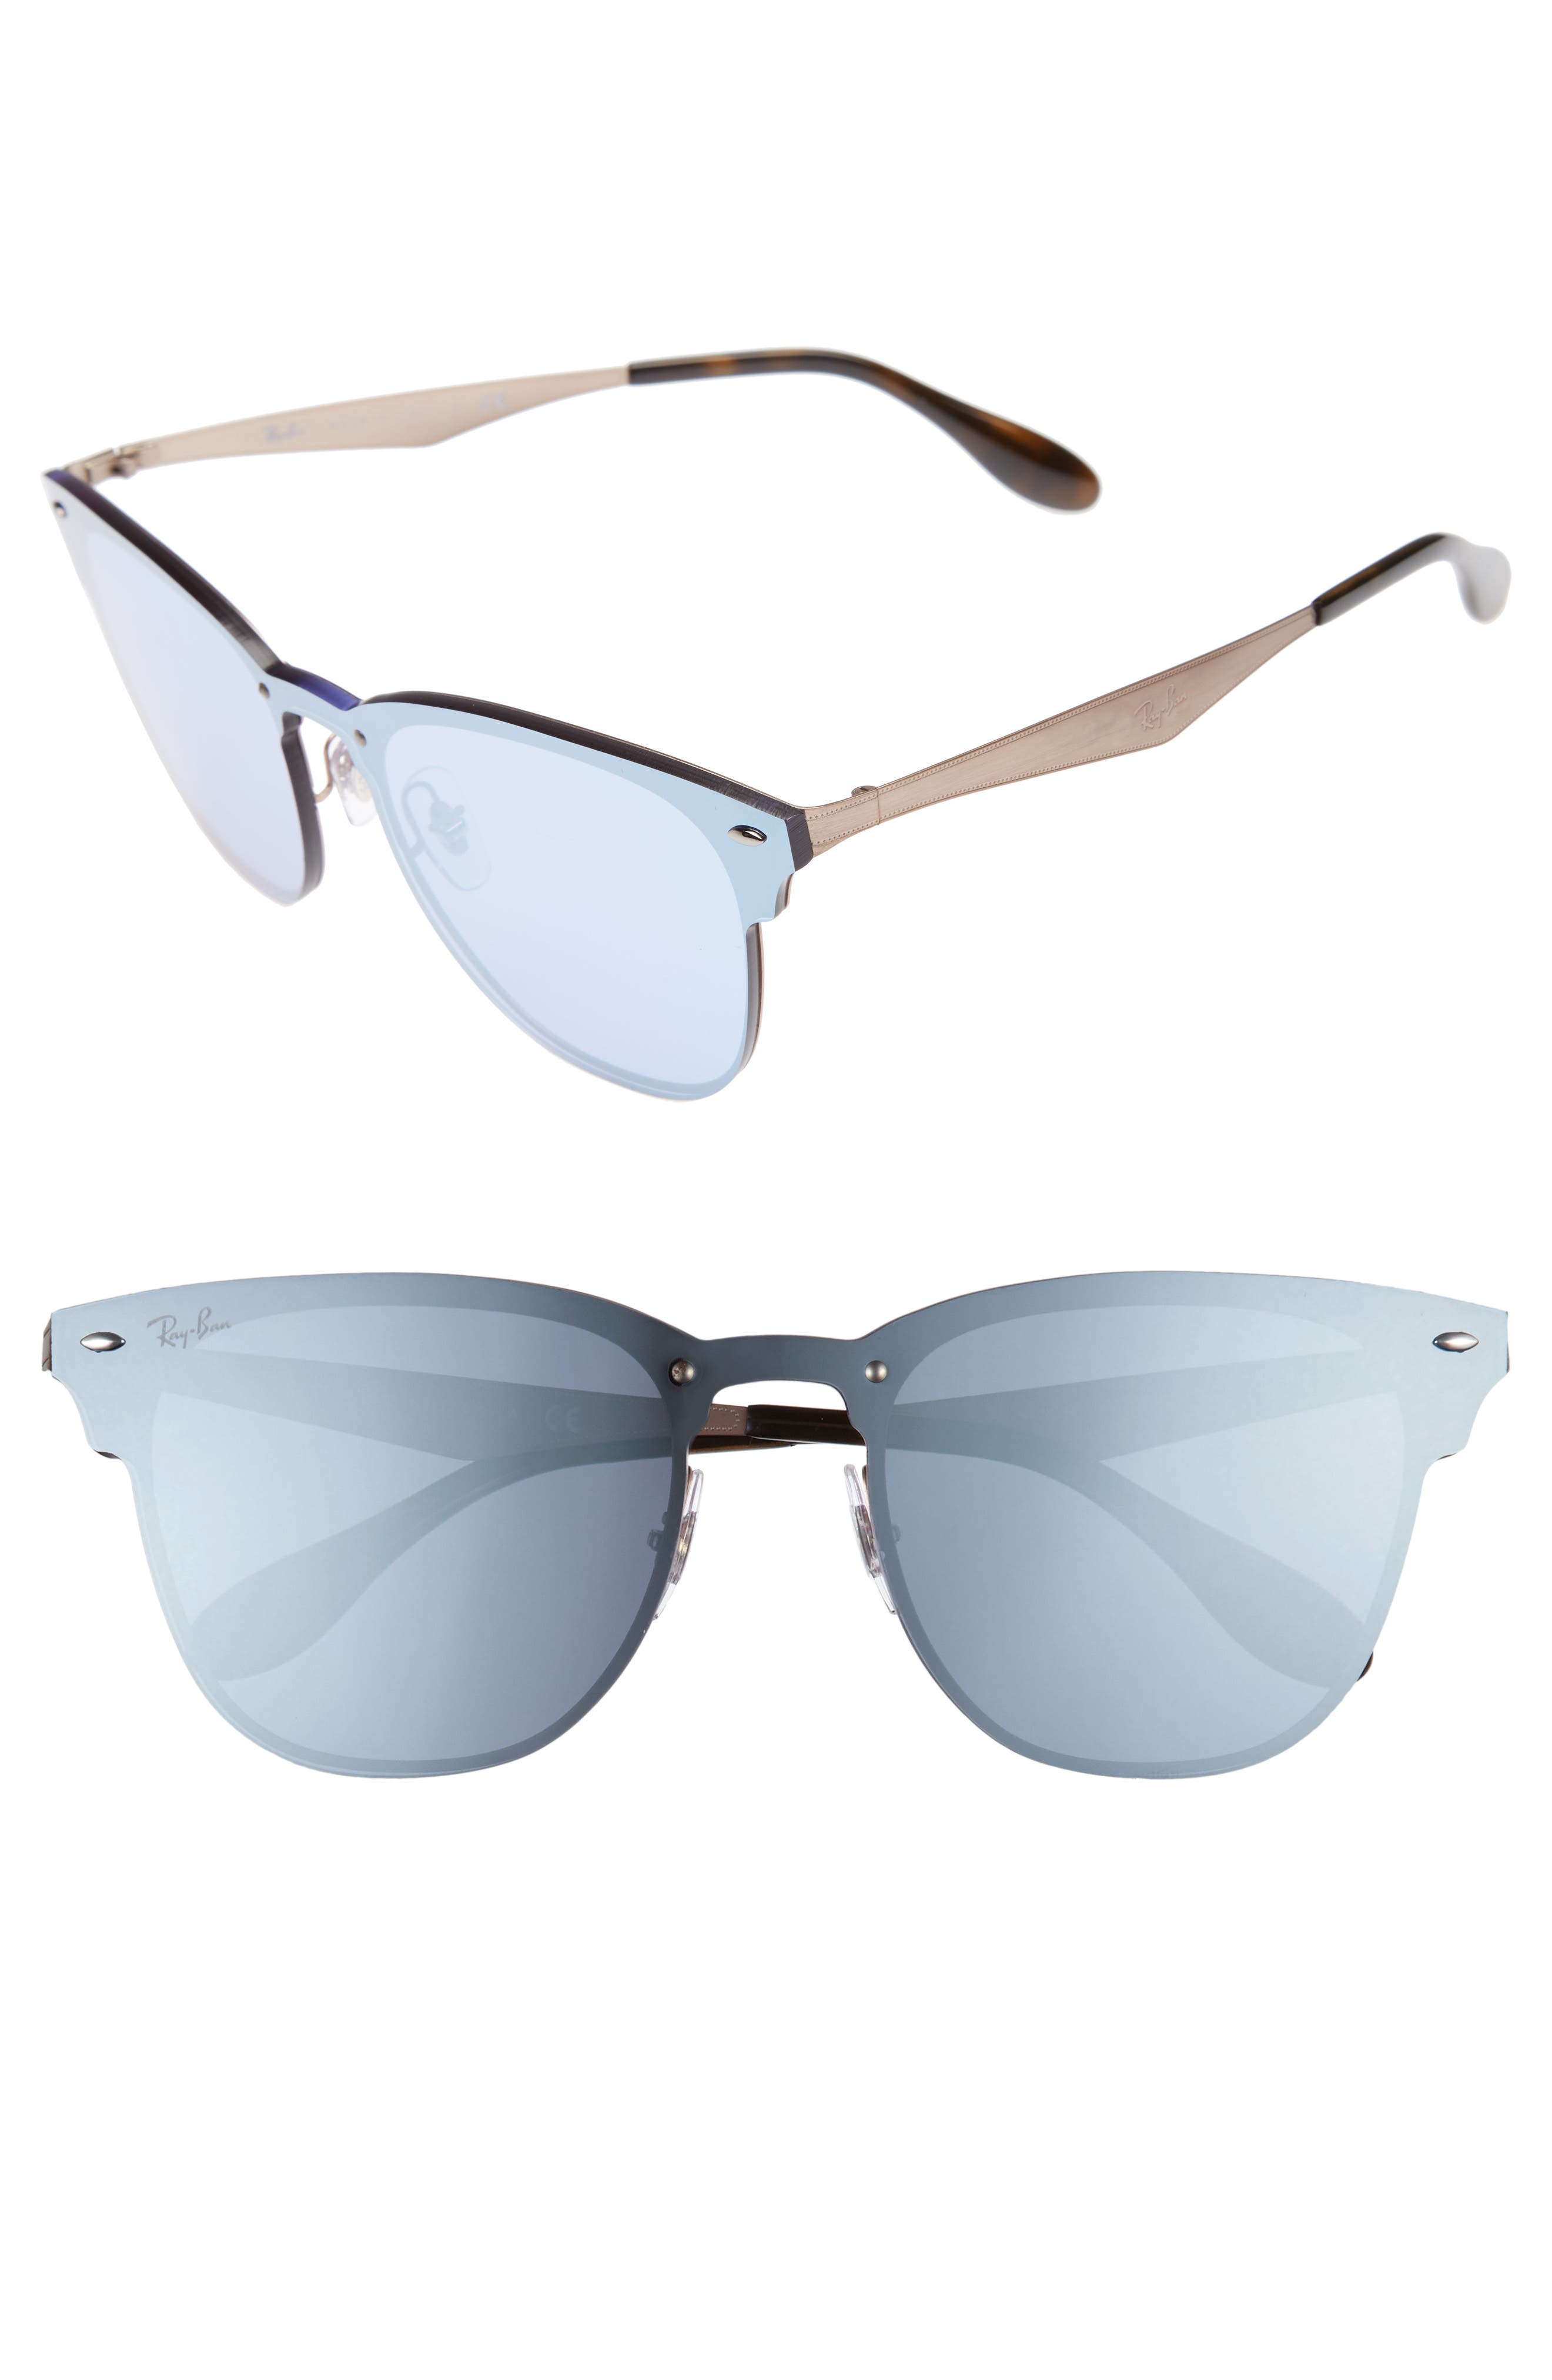 50mm Round Clubmaster Sunglasses,                             Main thumbnail 2, color,